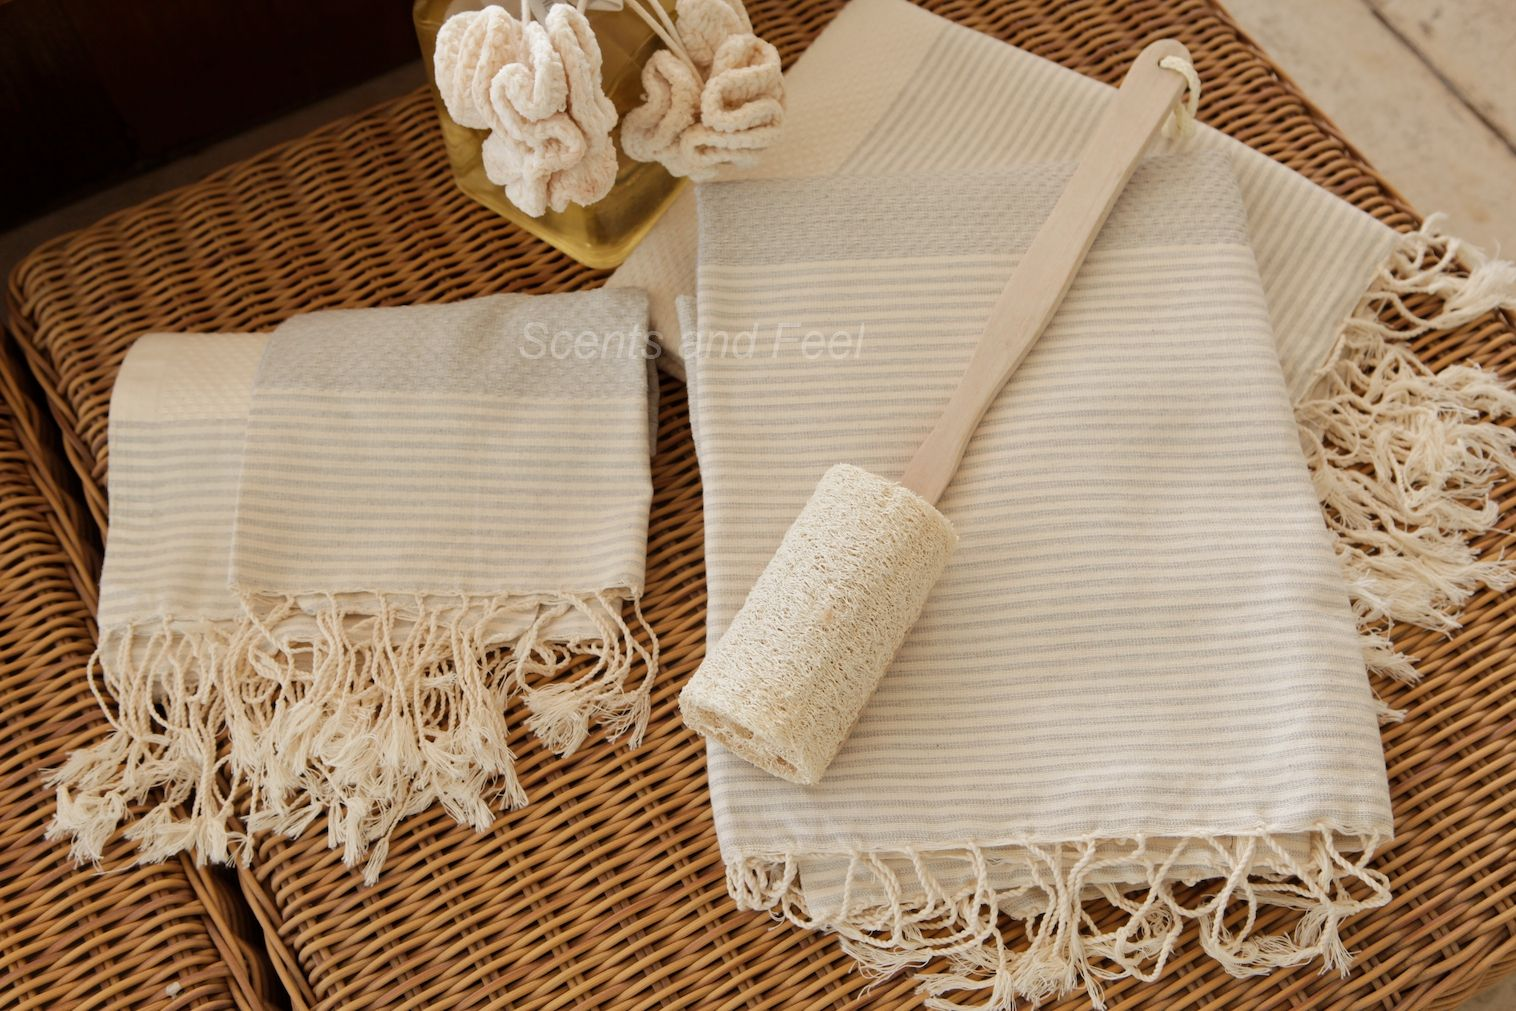 Fouta set. The 28x78 large size of the fouta makes it versitile in use. A blanket, throw, shawl, or towel it's softness and absorbancy is practical and luxurious.